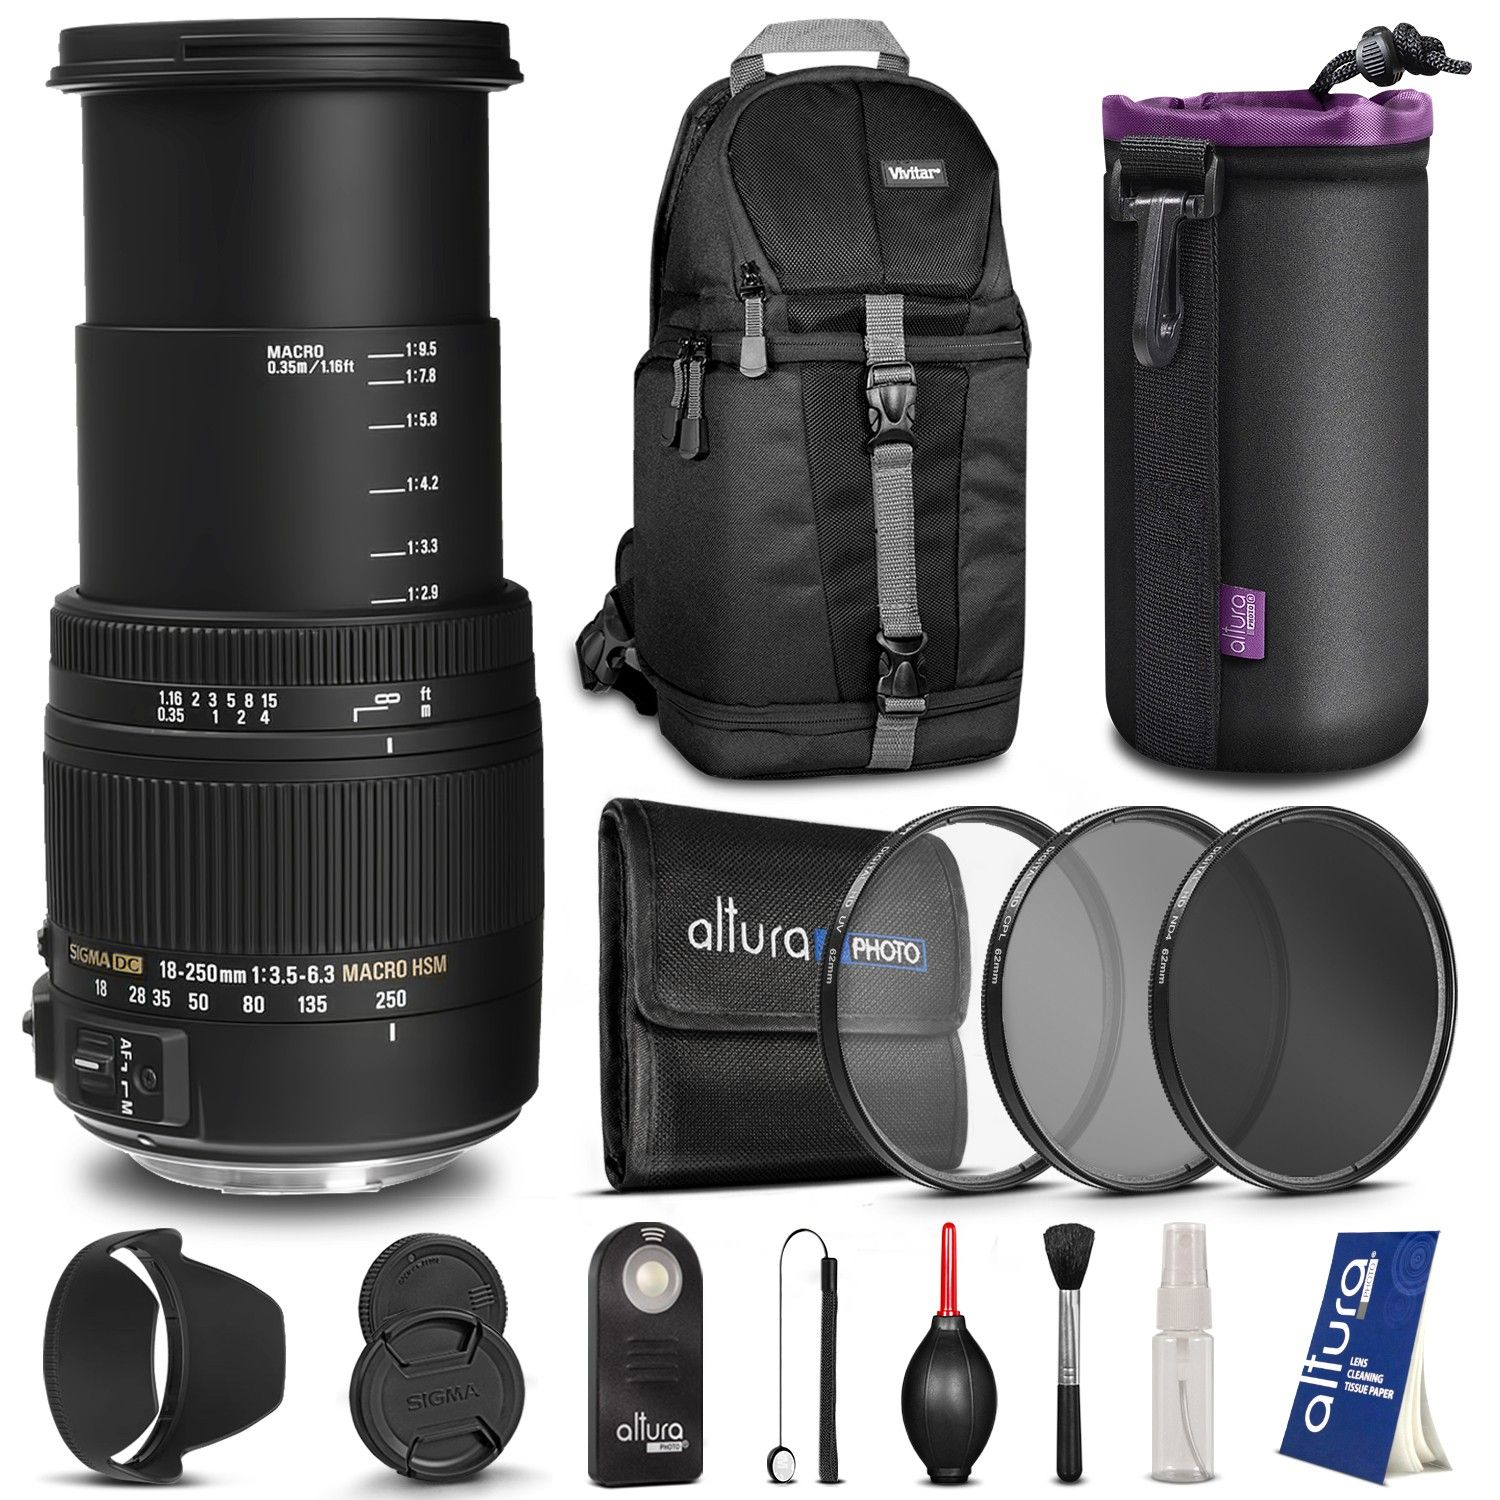 Sigma 18 250mm F 3 5 6 3 Dc Macro Os Hsm Lens For Canon Dslr Cameras With Advanced Kit The Best Black Friday Deals B Nikon Dslr Camera Nikon Dslr Dslr Camera